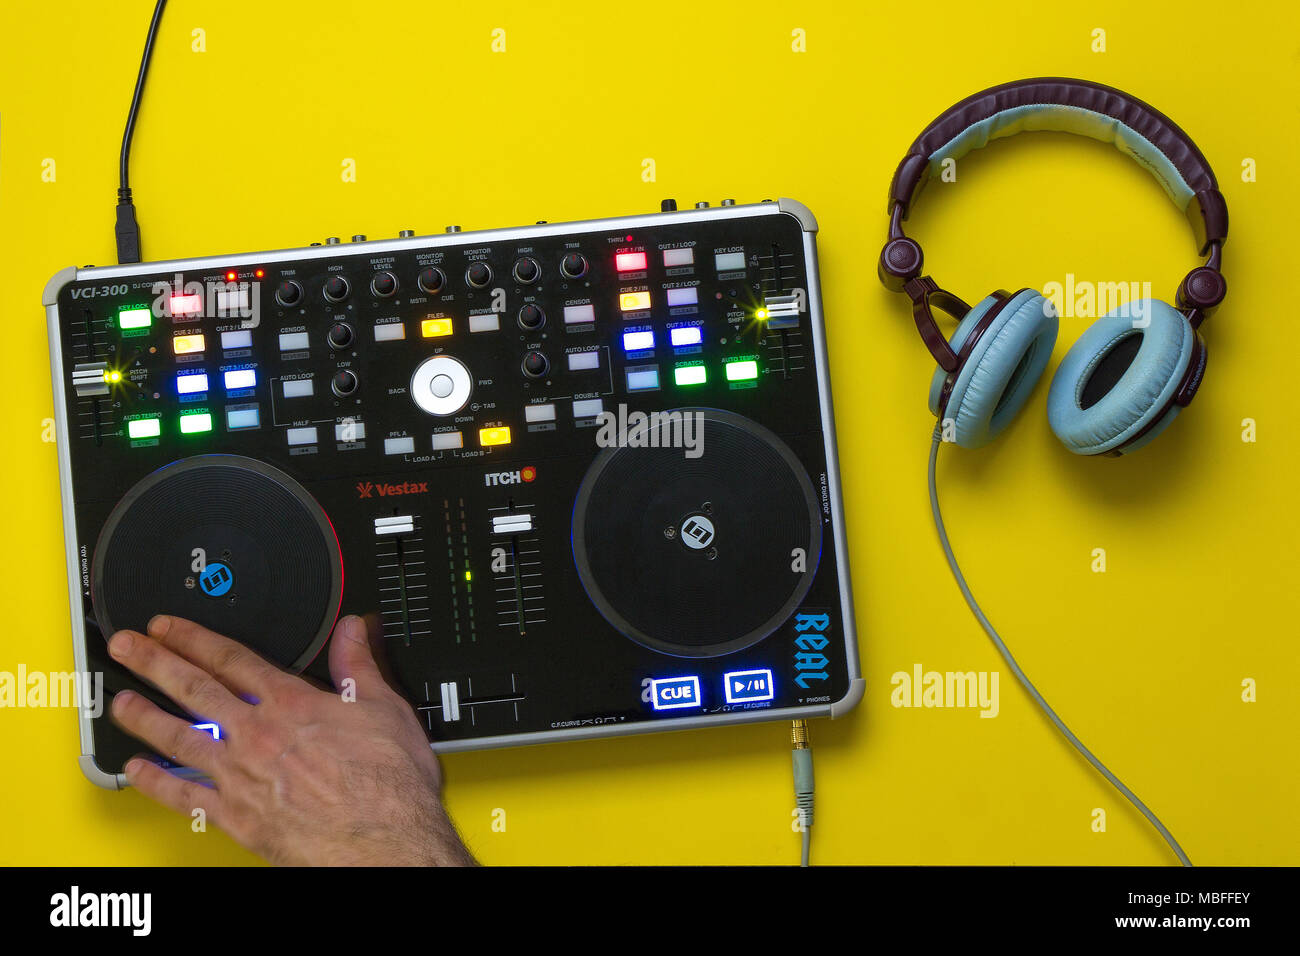 Dj mp3 console and headphones - Stock Image